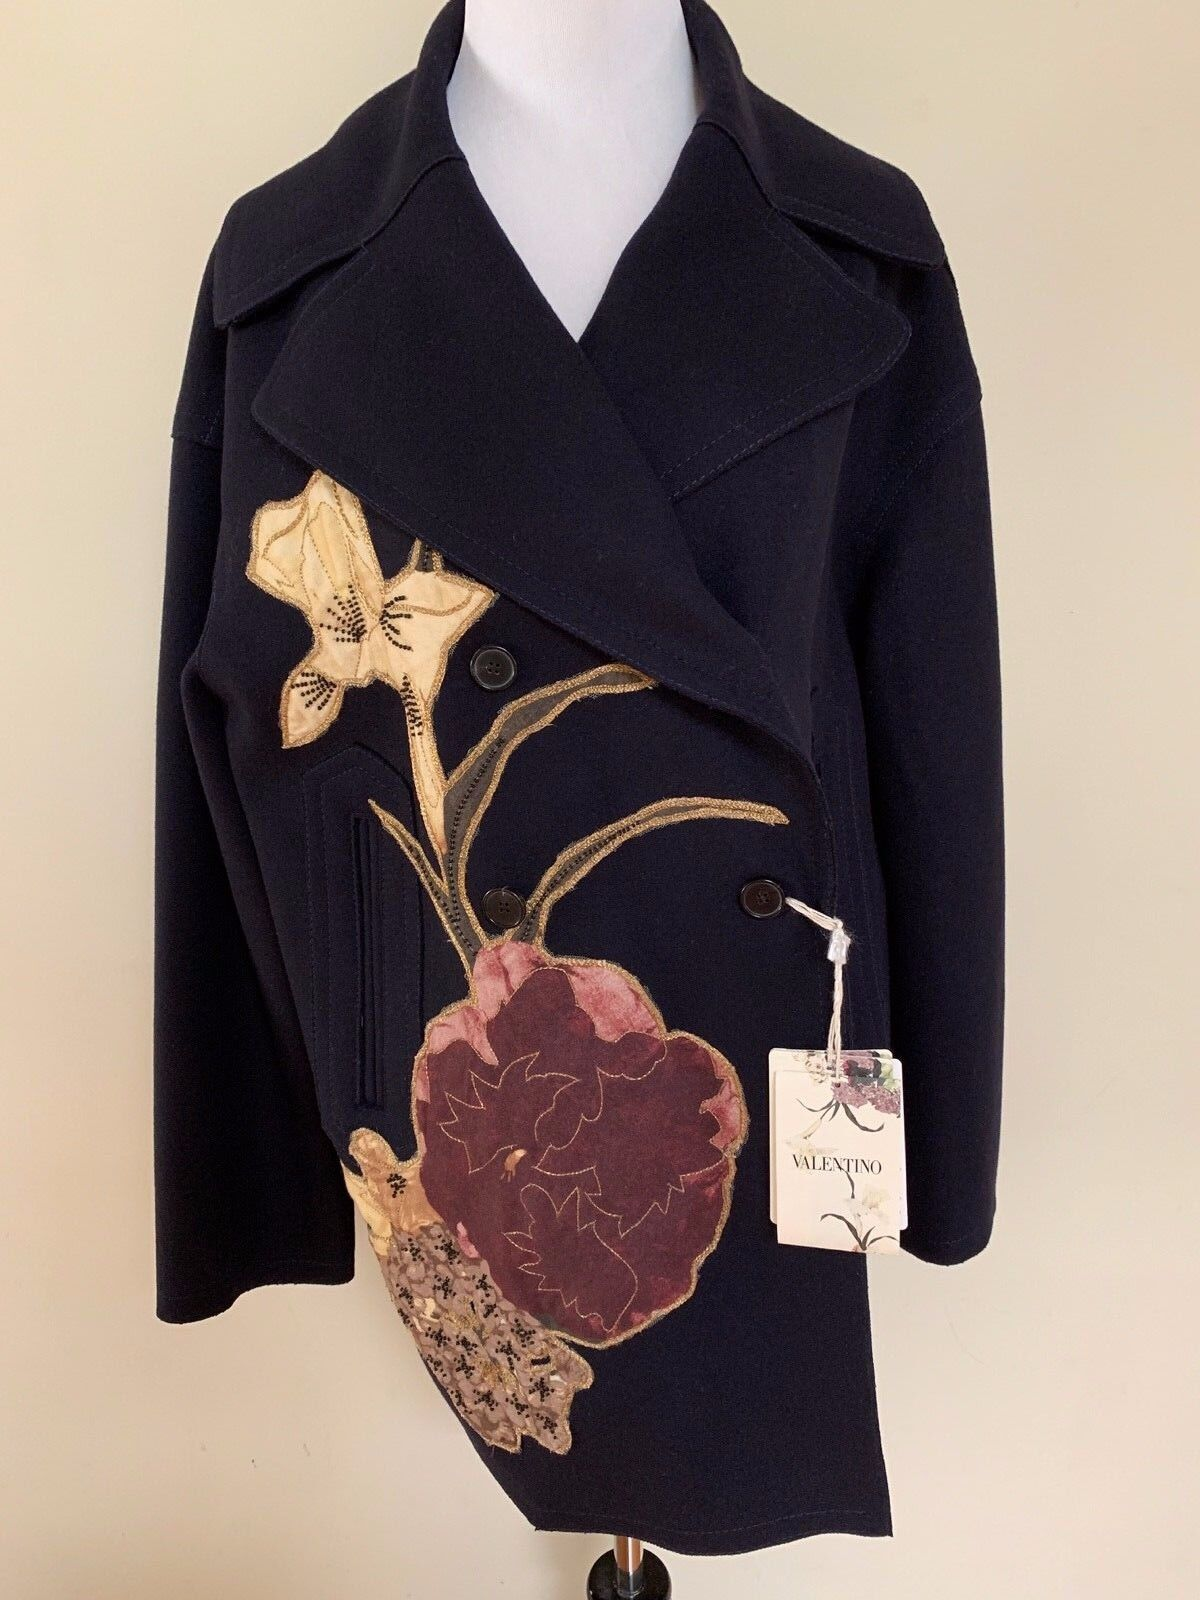 NWT Valentino Navy Navy Navy bluee Floral Applique Embroidered Beaded Wool Coat Sz 10  6250 0be4d6